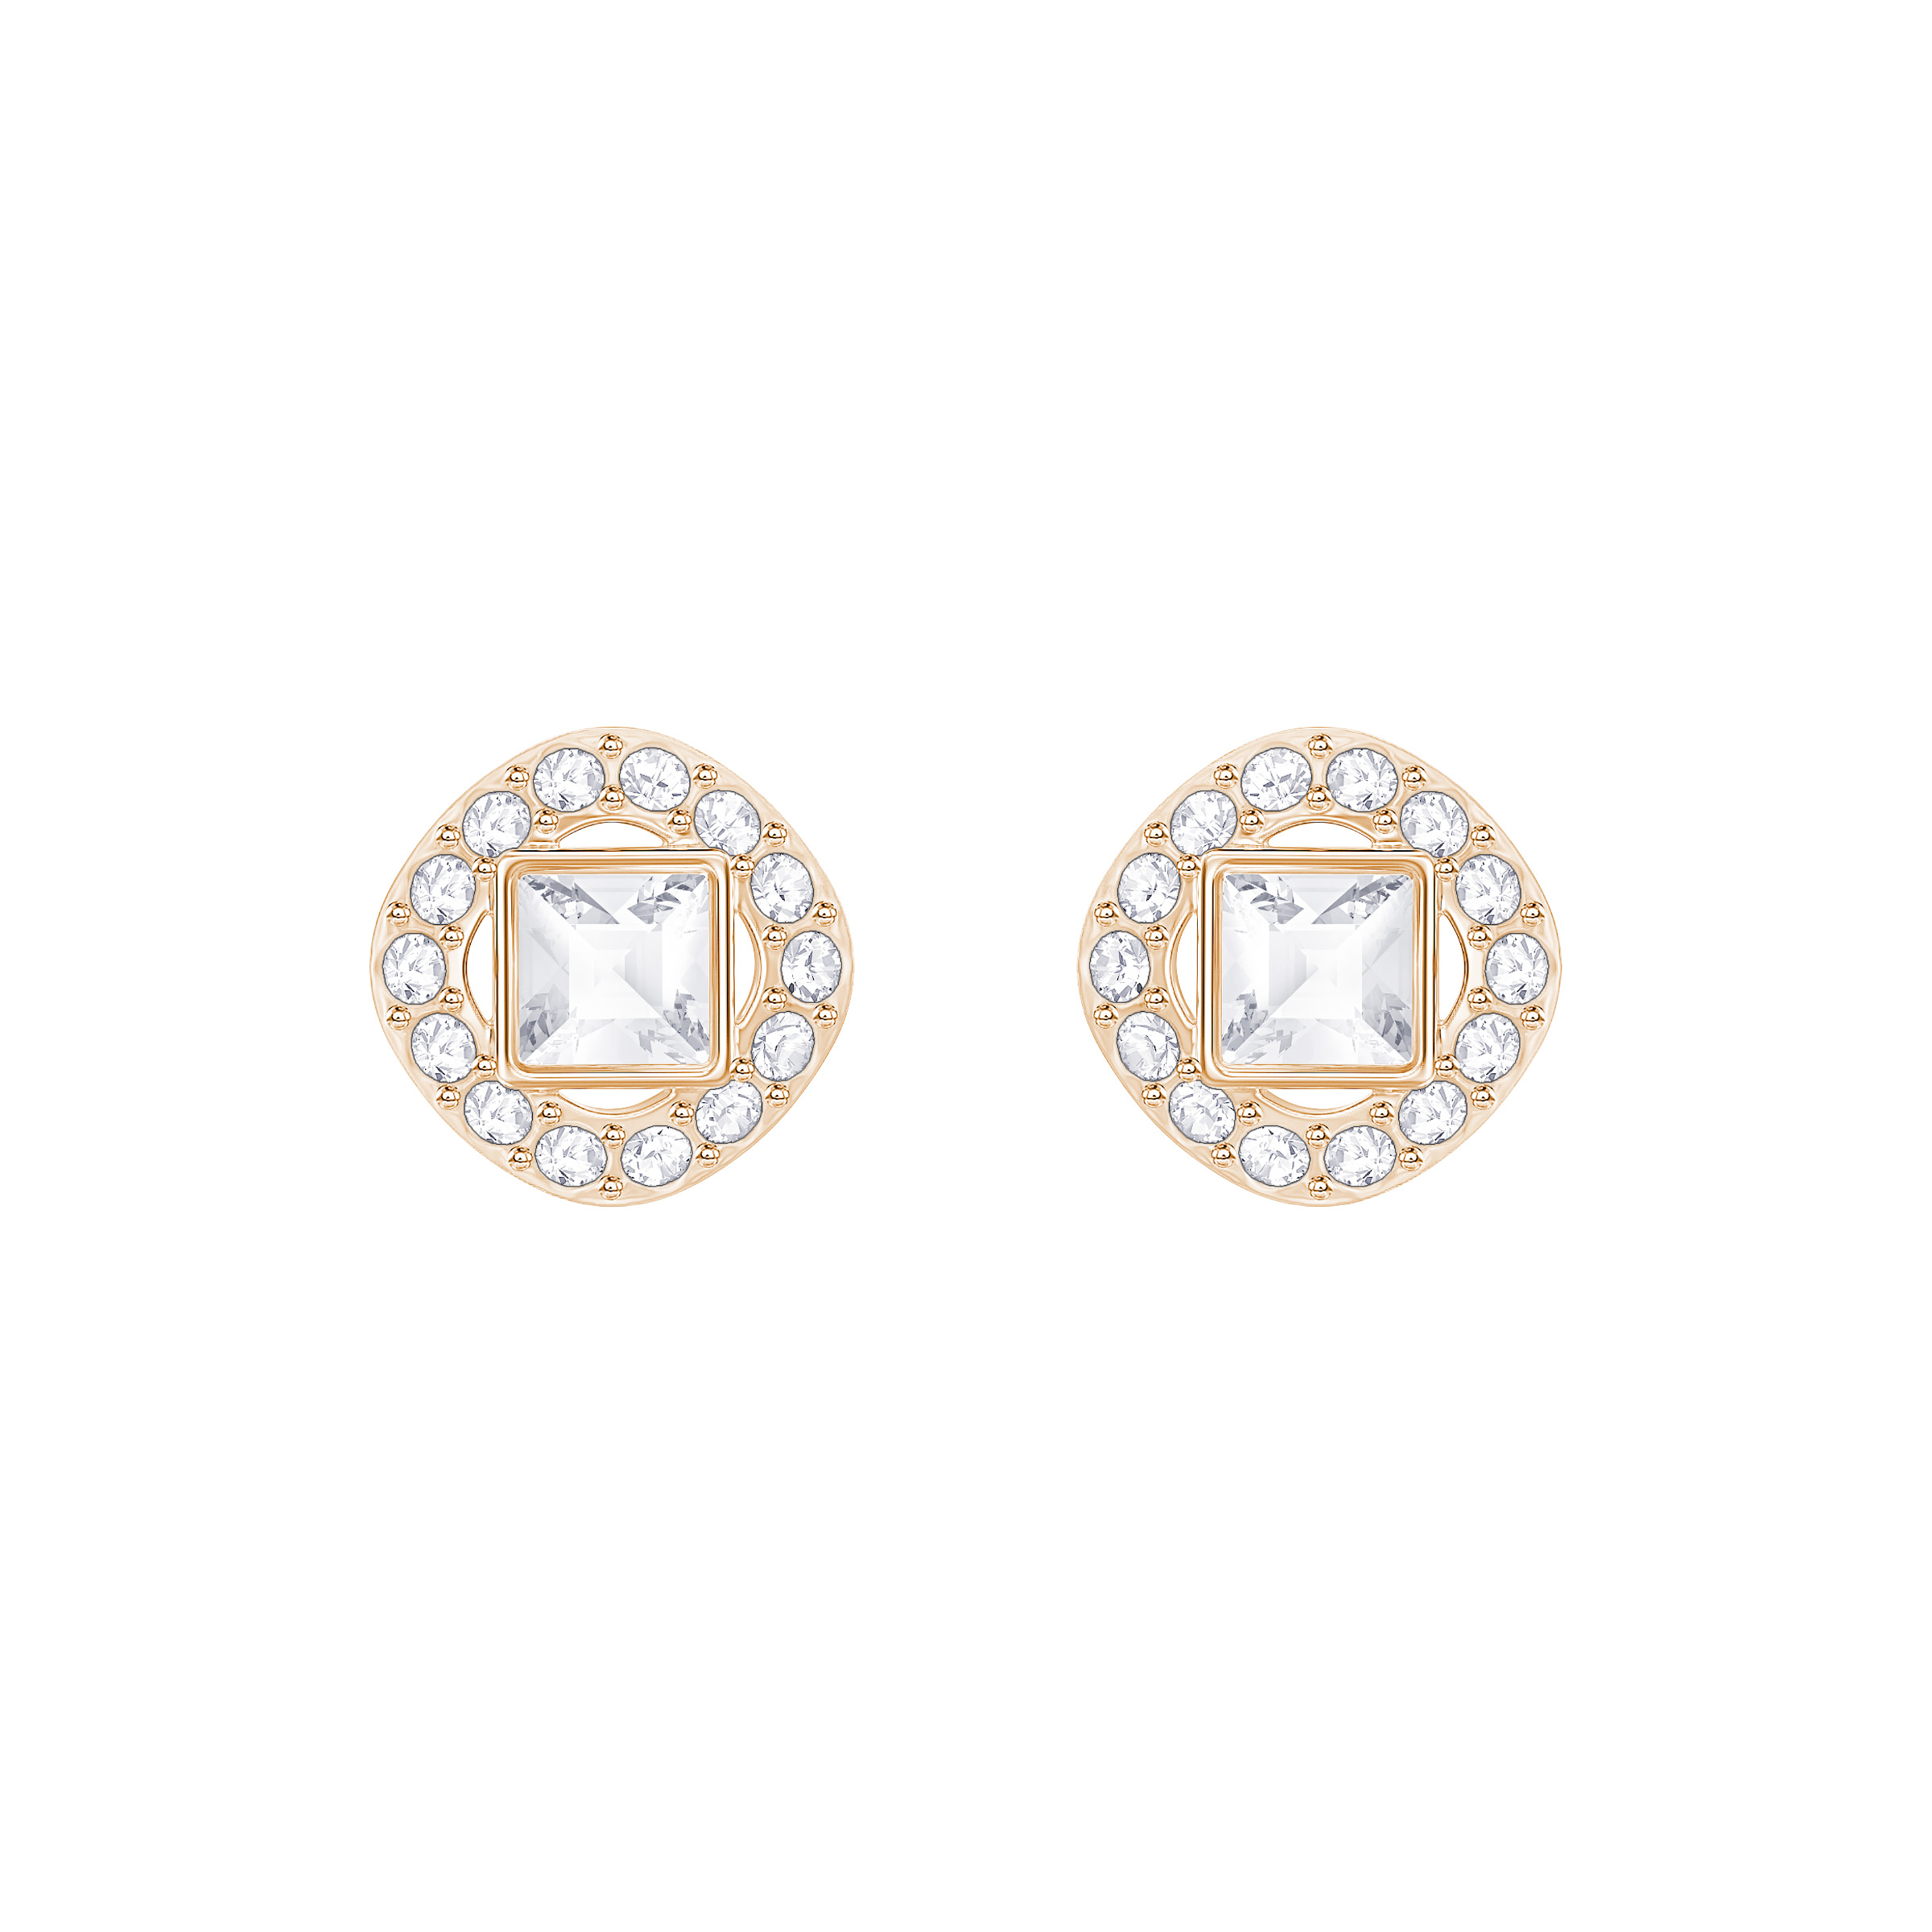 838dd2ec835a0 ANGELIC SQUARE PIERCED EARRINGS, WHITE, ROSE GOLD PLATING